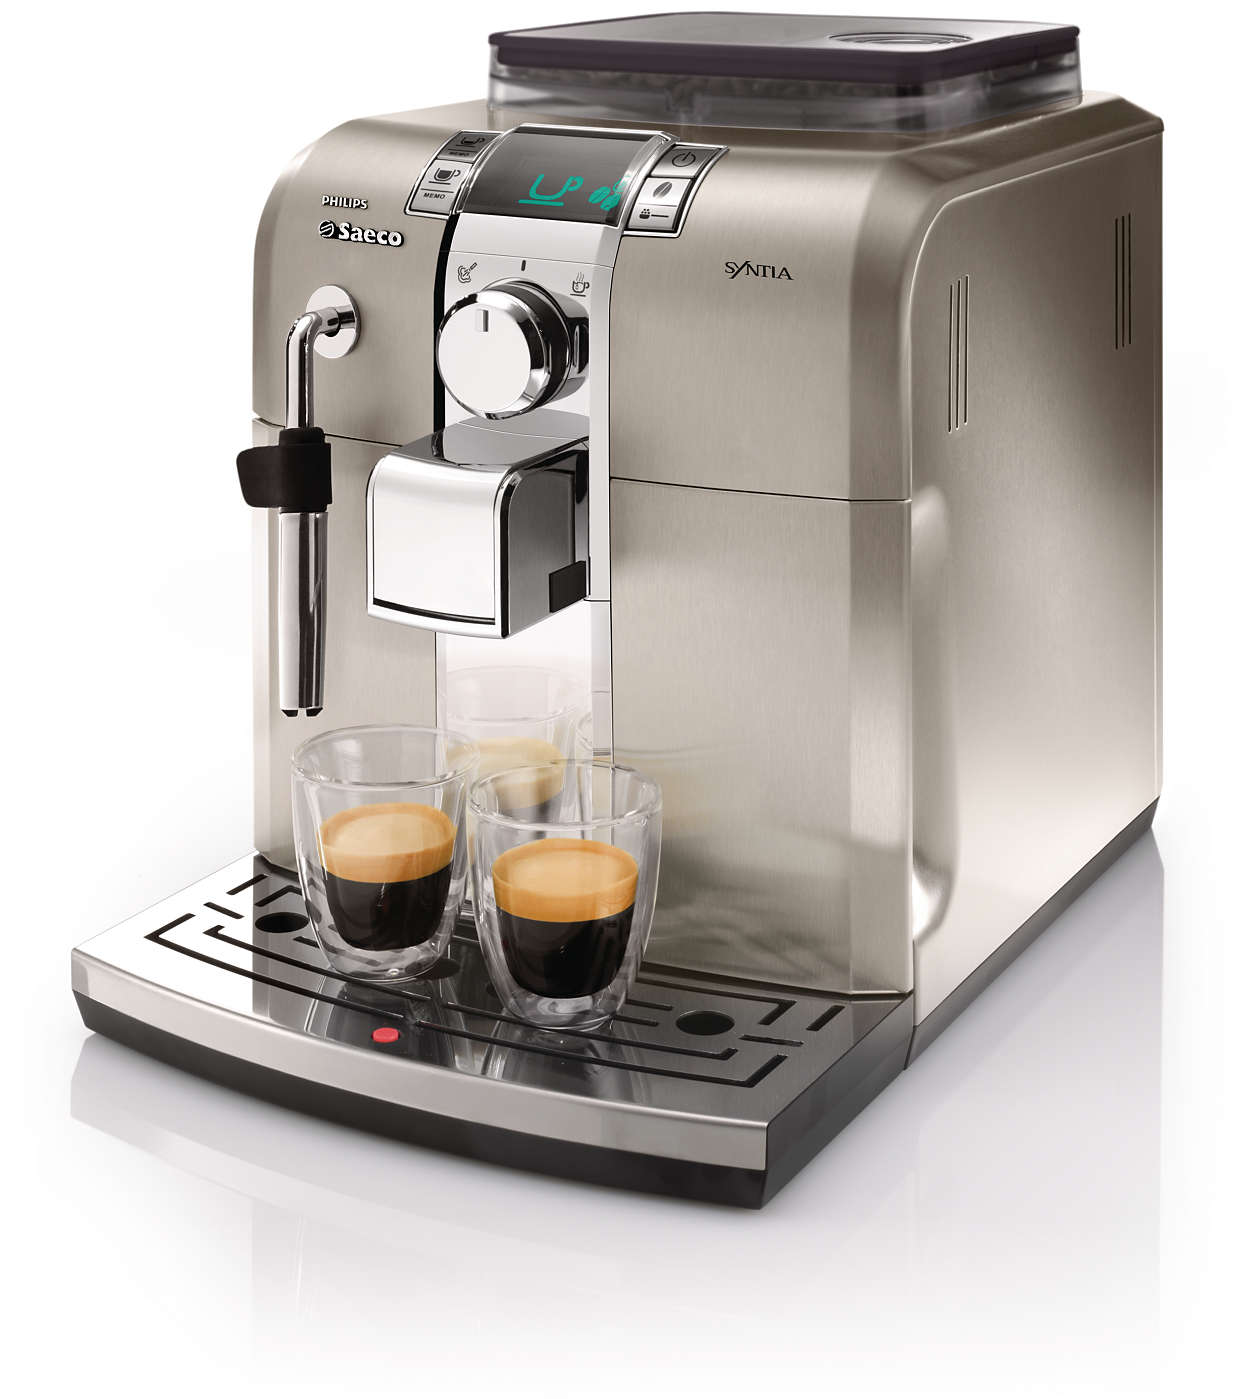 syntia super automatic espresso machine hd8837 47 saeco. Black Bedroom Furniture Sets. Home Design Ideas